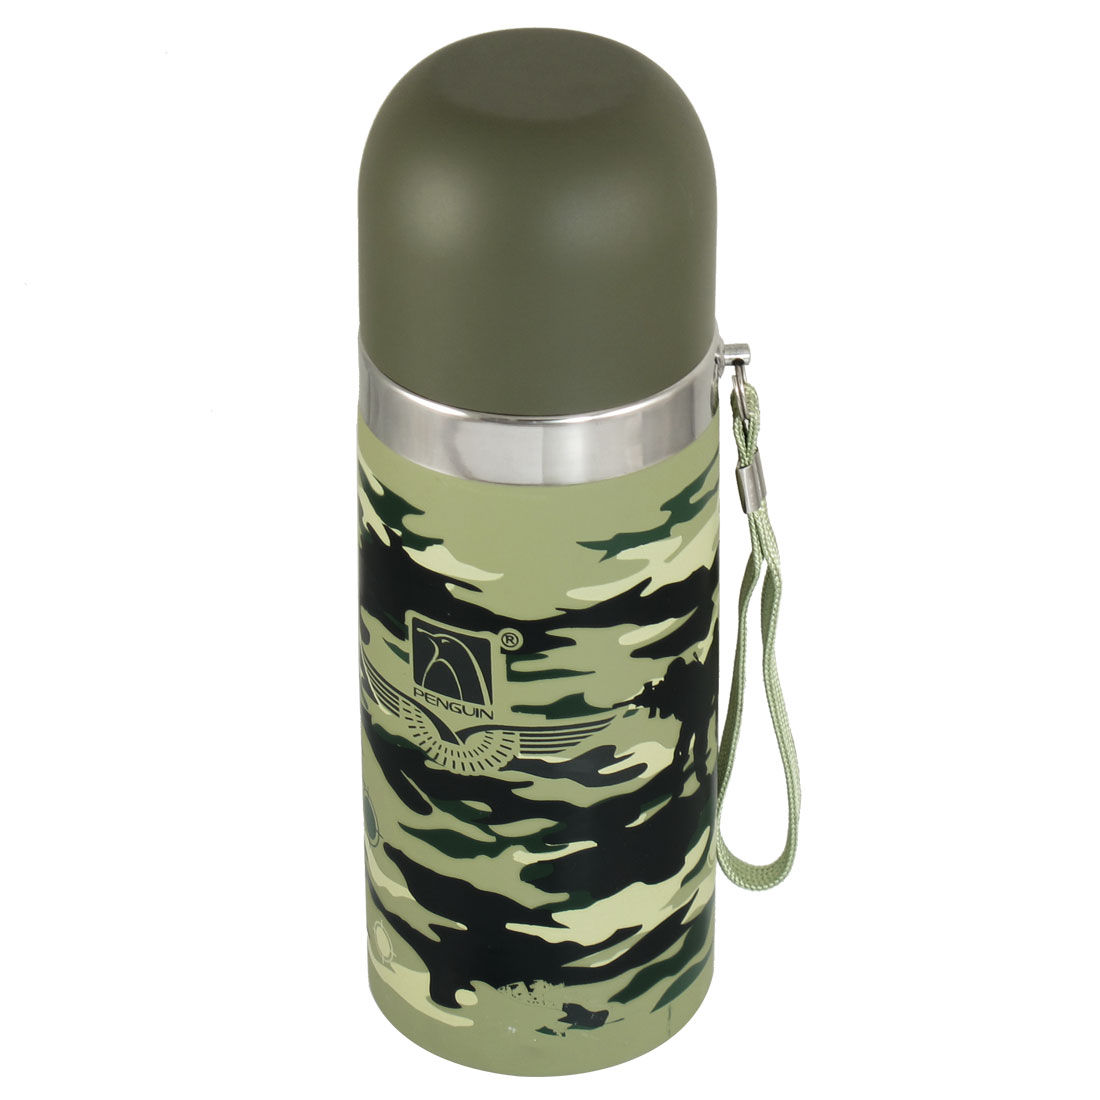 Outdoor Stainless Steel Vacuum Insulating Bottle Cup Mug 350ml 12oz